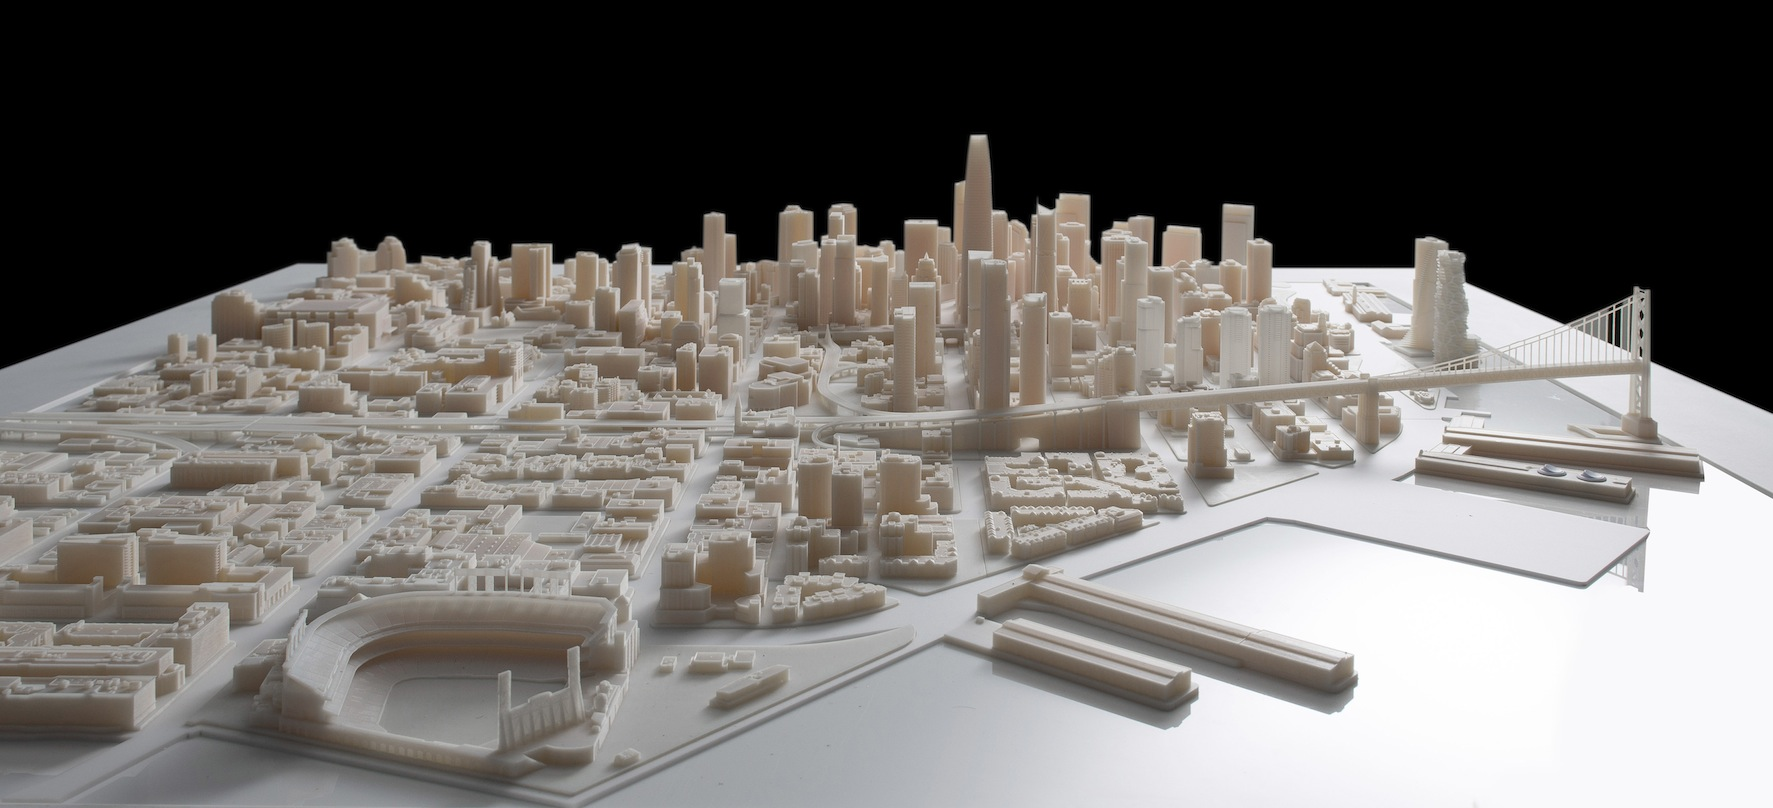 See san francisco all in white thanks to autodesk Making models for 3d printing